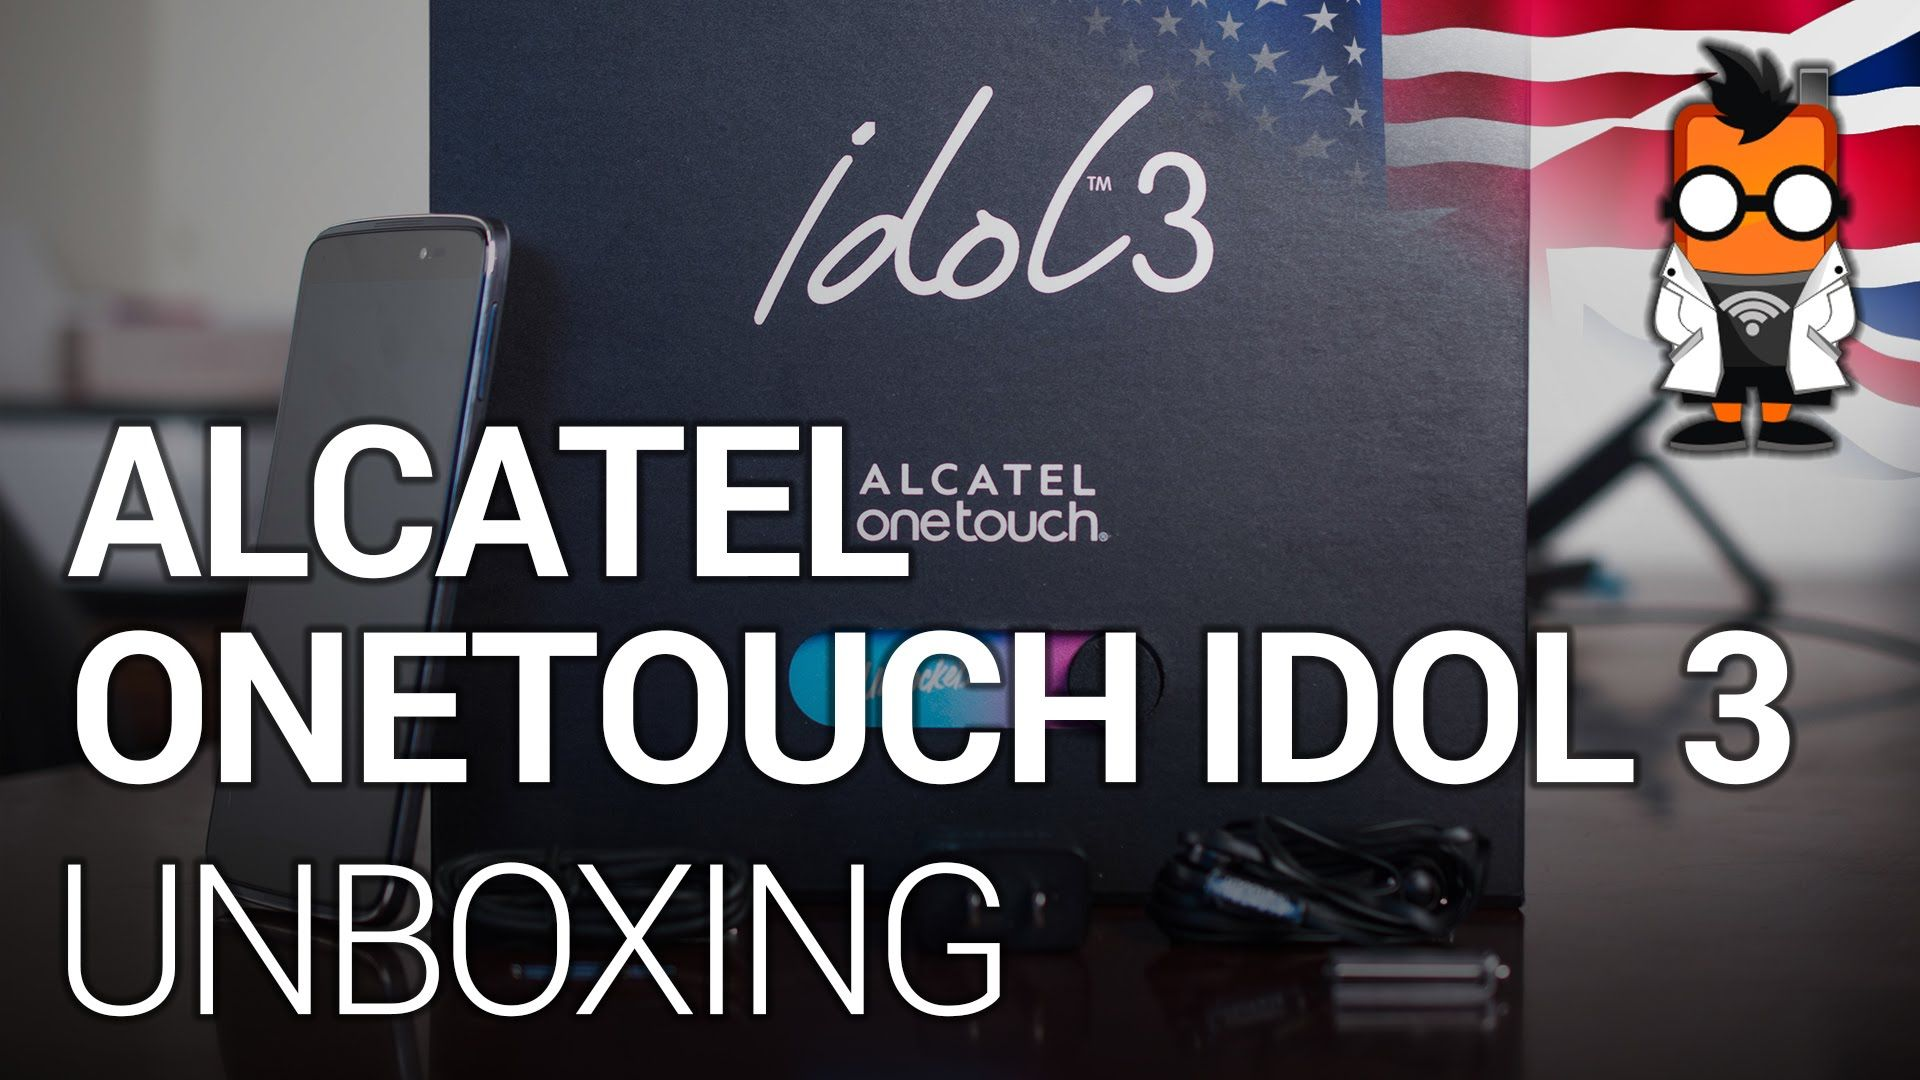 Mobile Geeks unboxes the IDOL 3 unlocked smartphone